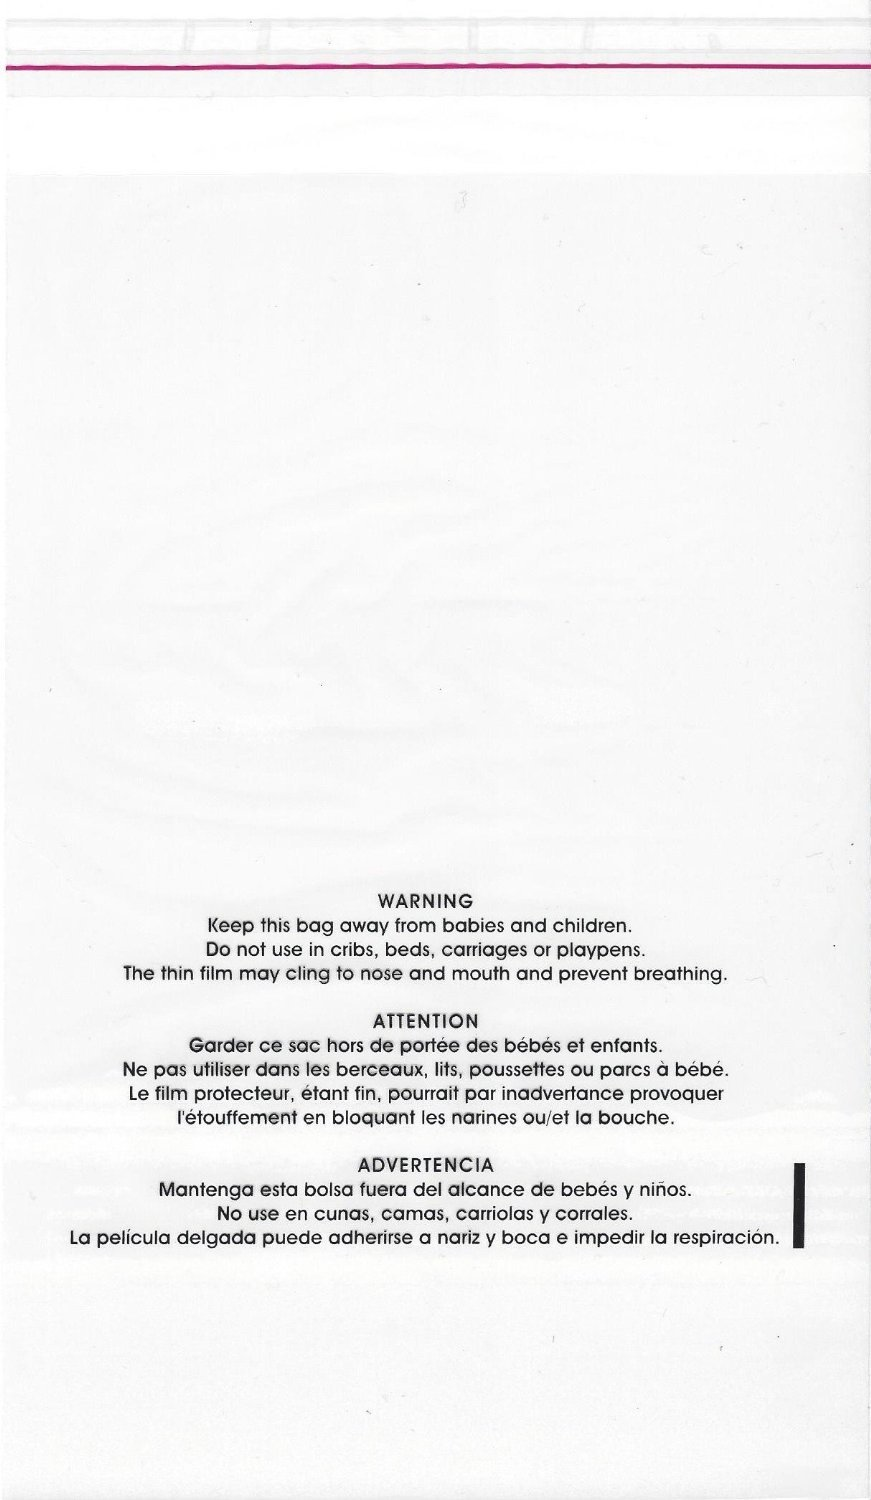 ULINE S-1931 Resealable Suffocation Warning Bag for Shirts and Toys with Trilingual Printed Warning (1.5 Mil, 11 x 14 Inches, 100 Count)